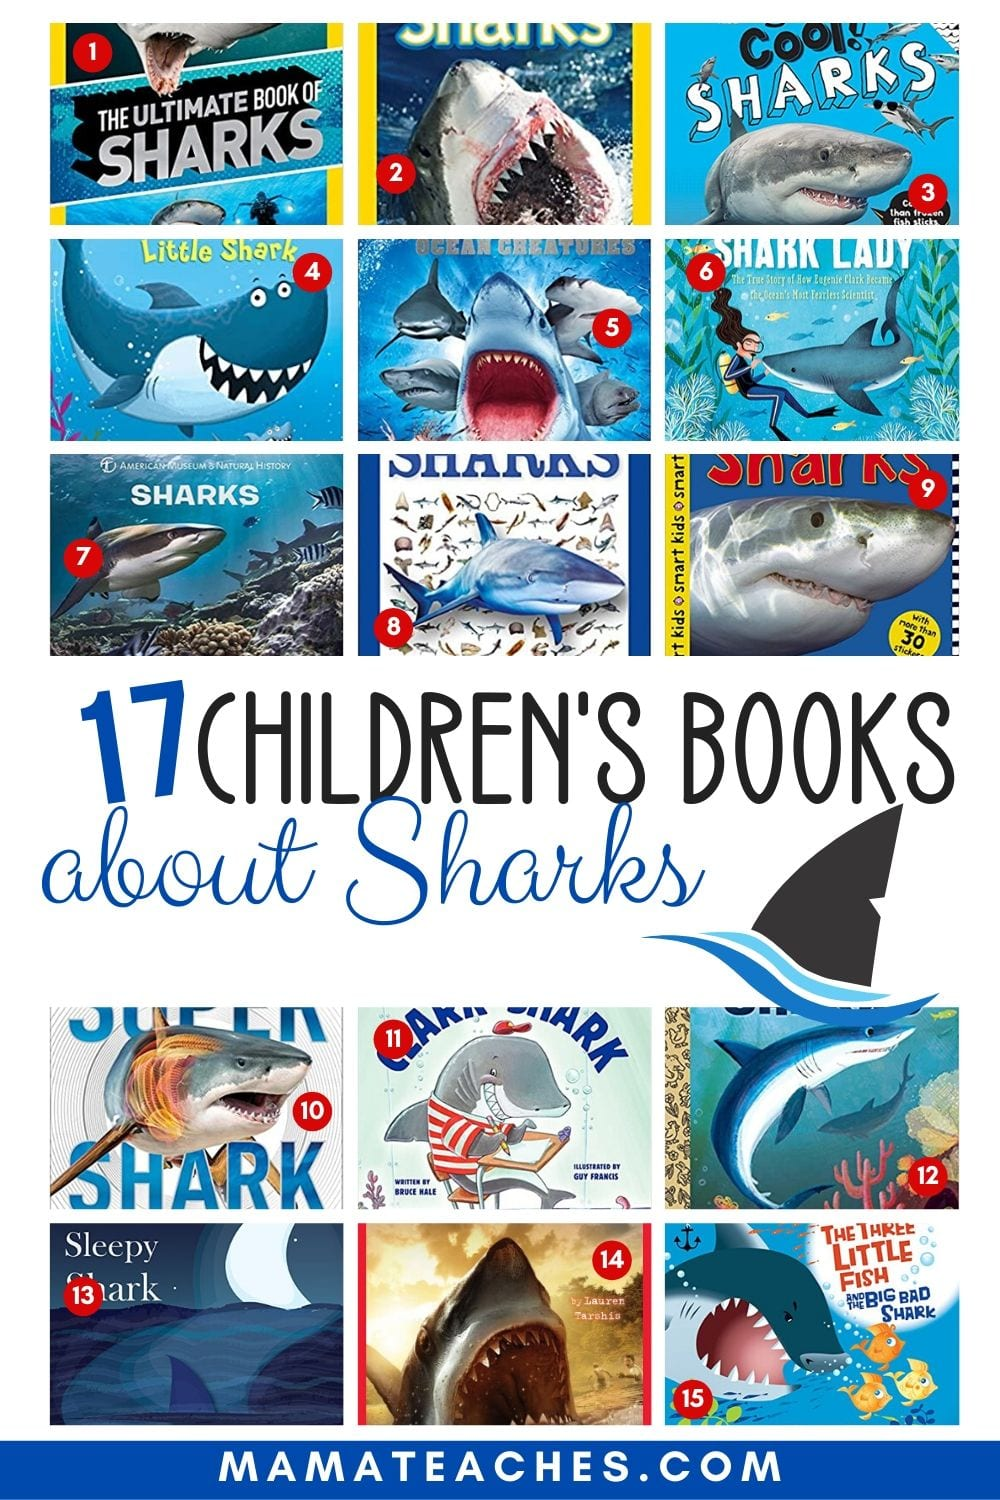 17 Children's Books About Sharks - What are you reading for shark week? - MamaTeaches.com